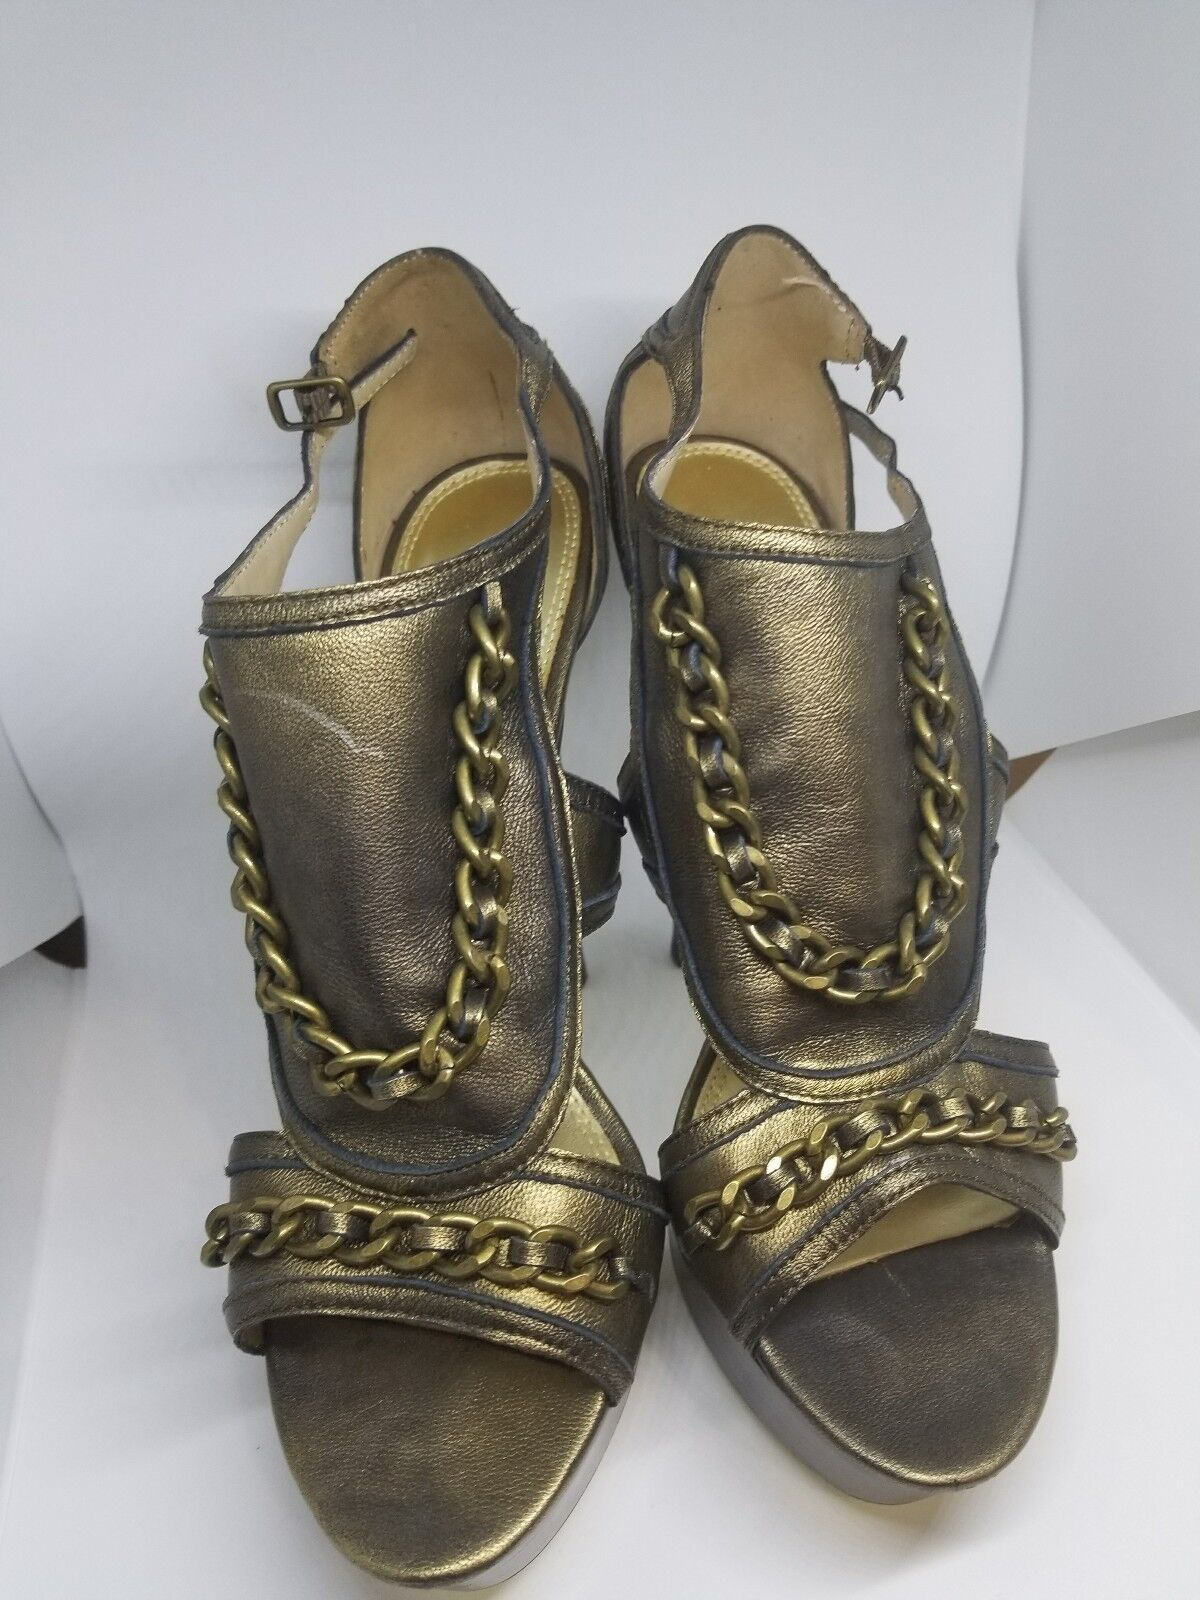 Bebe gold Bronze  Sandals Heels with chain Size 8